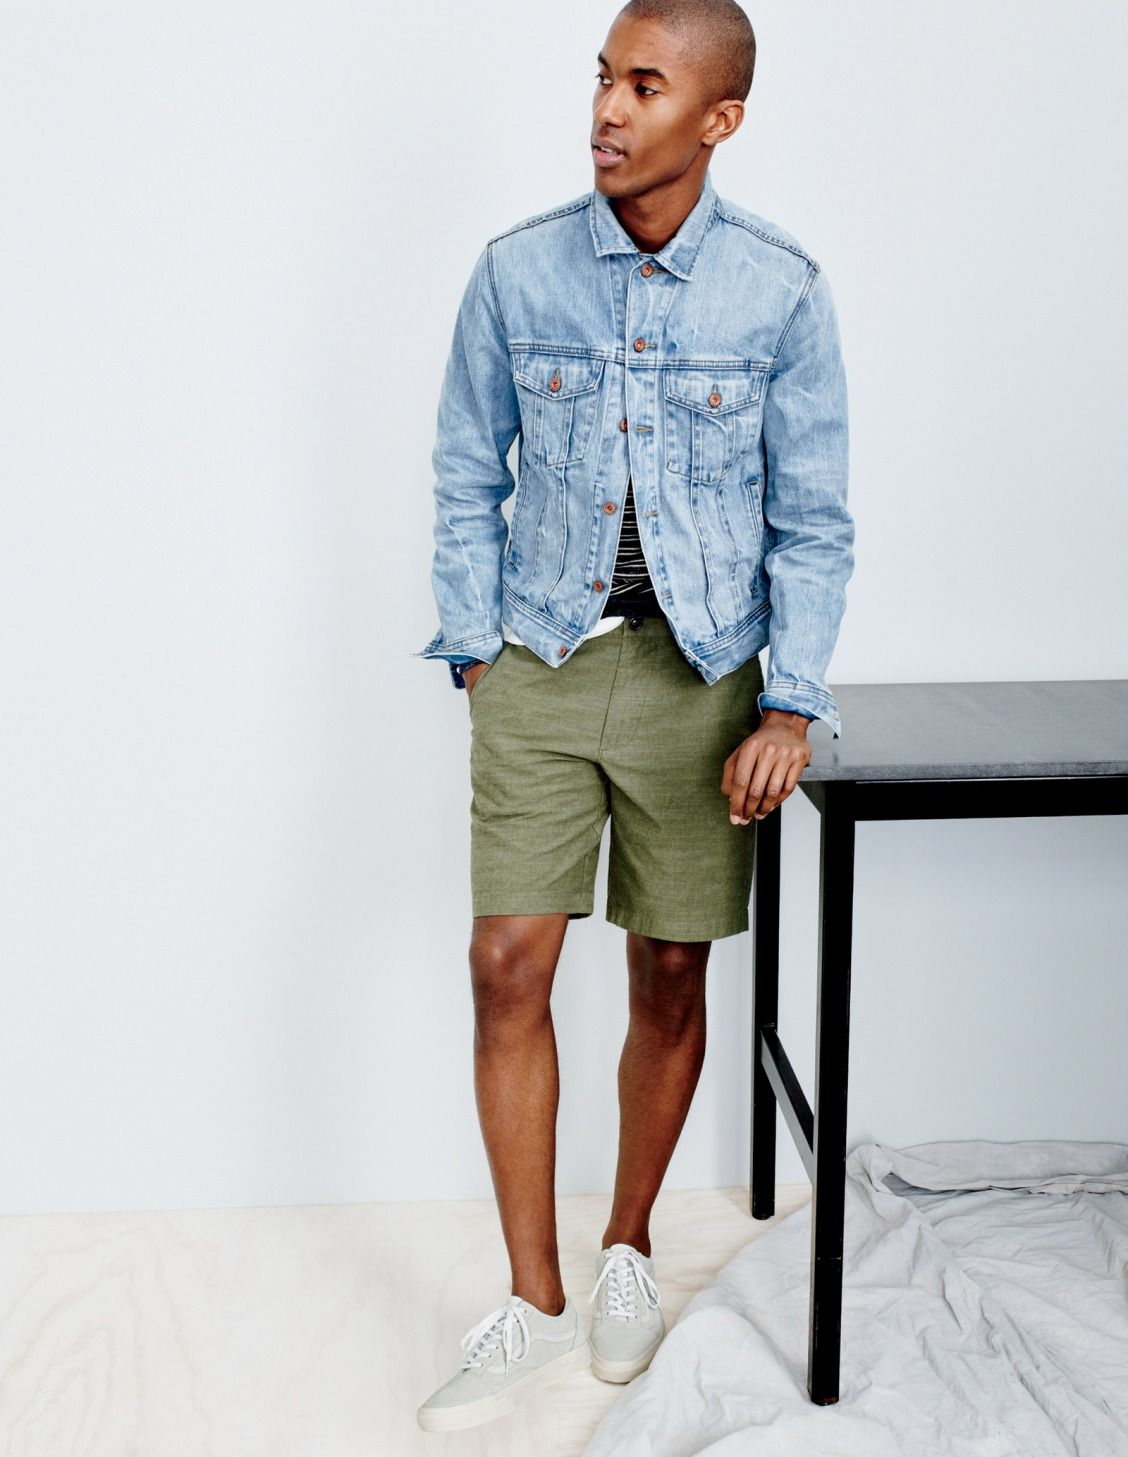 J crew men's casual jackets